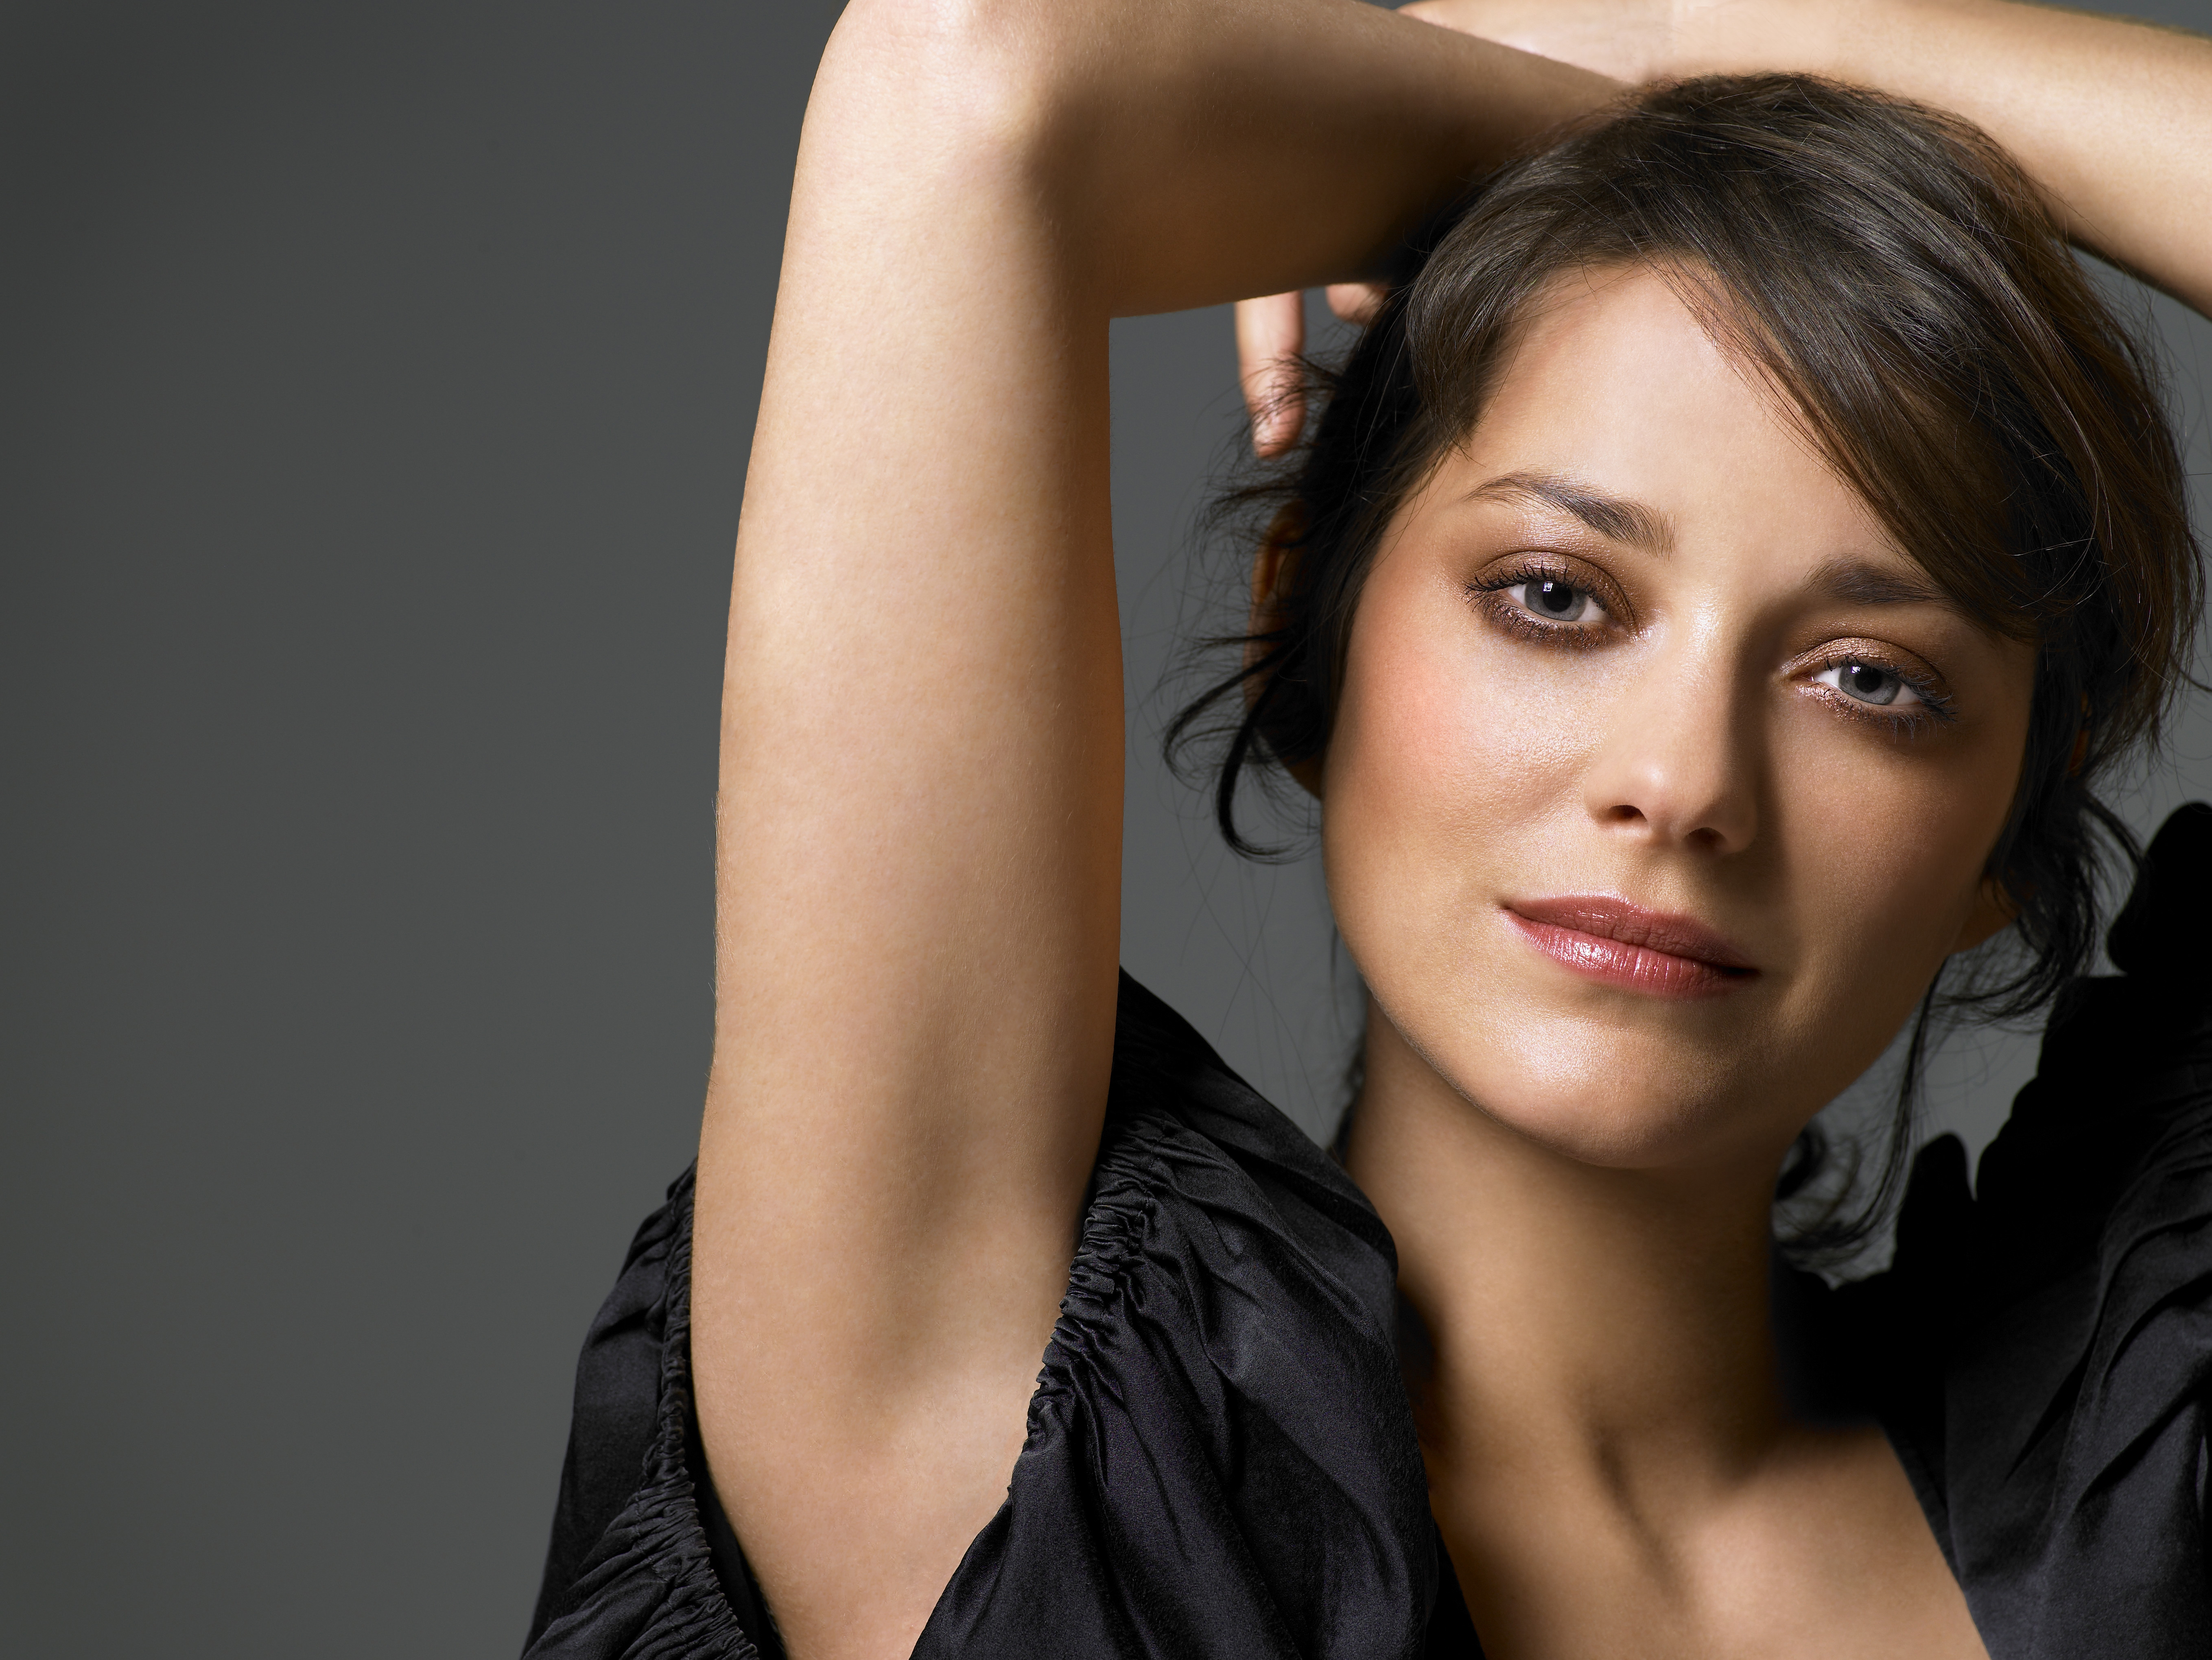 Marion Cotillard Fame Family And Film Nz Herald